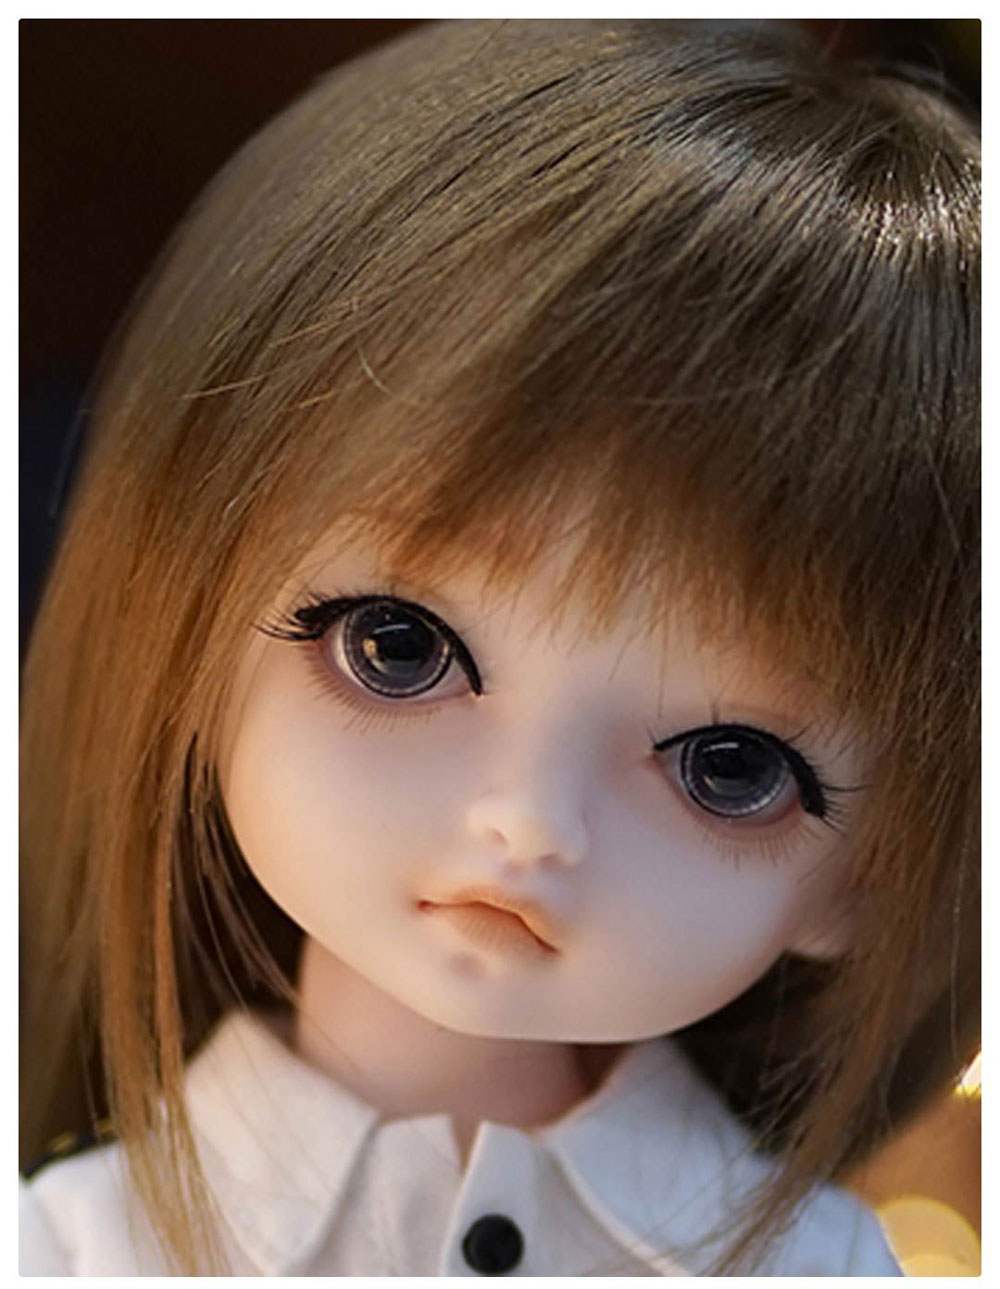 xiaomi youpin monst simulation cute bjd doll toy for sale